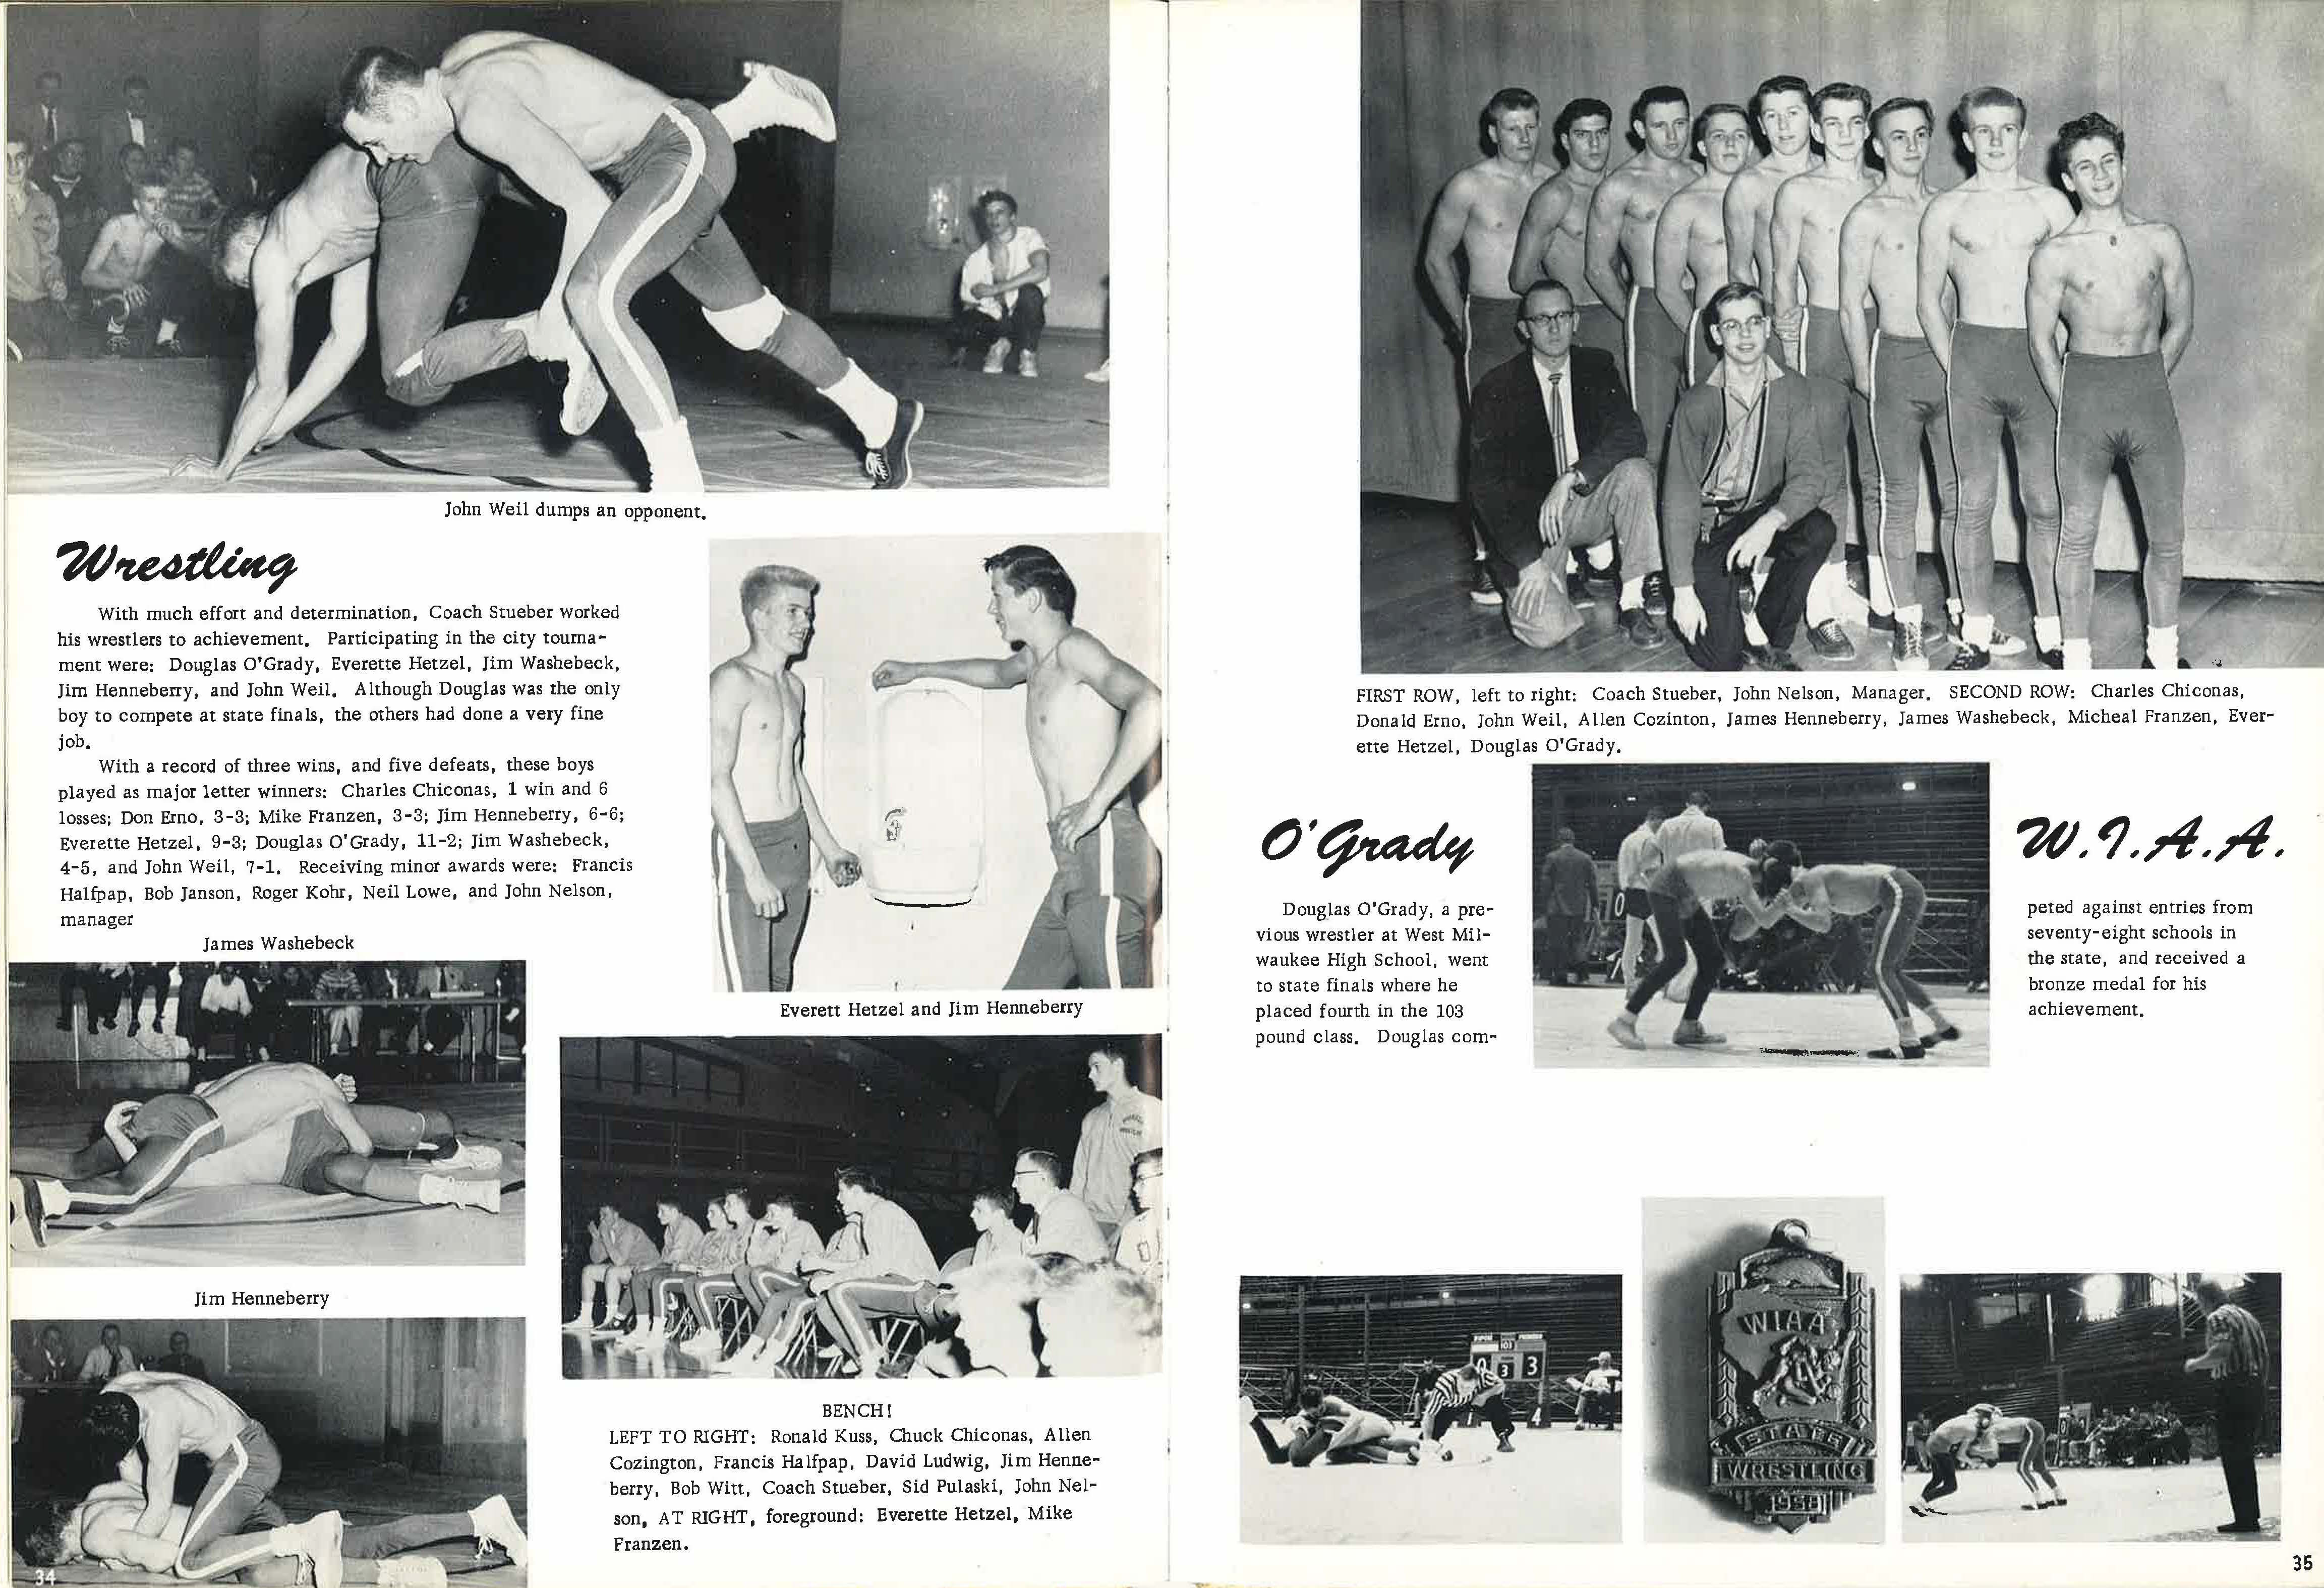 1958_Yearbook_34-35.jpg